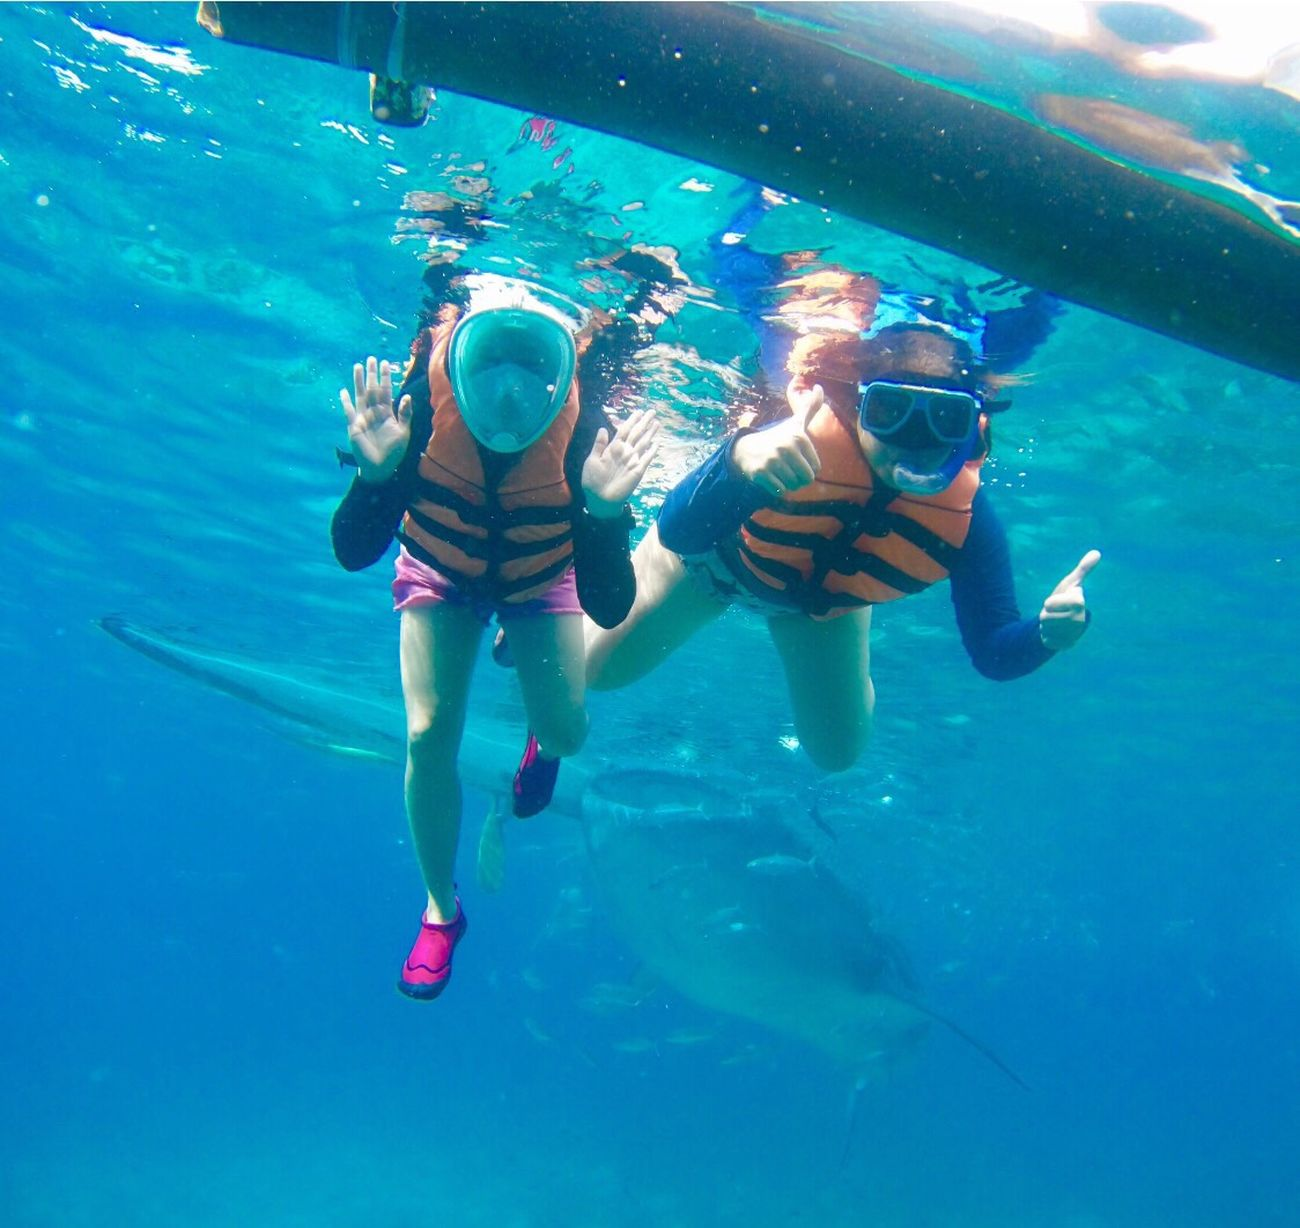 Enjoy The New Normal Friendship Underthesea Whaleshark Adventure Beautyofnature Yolo Fununderthesun Bucketlist